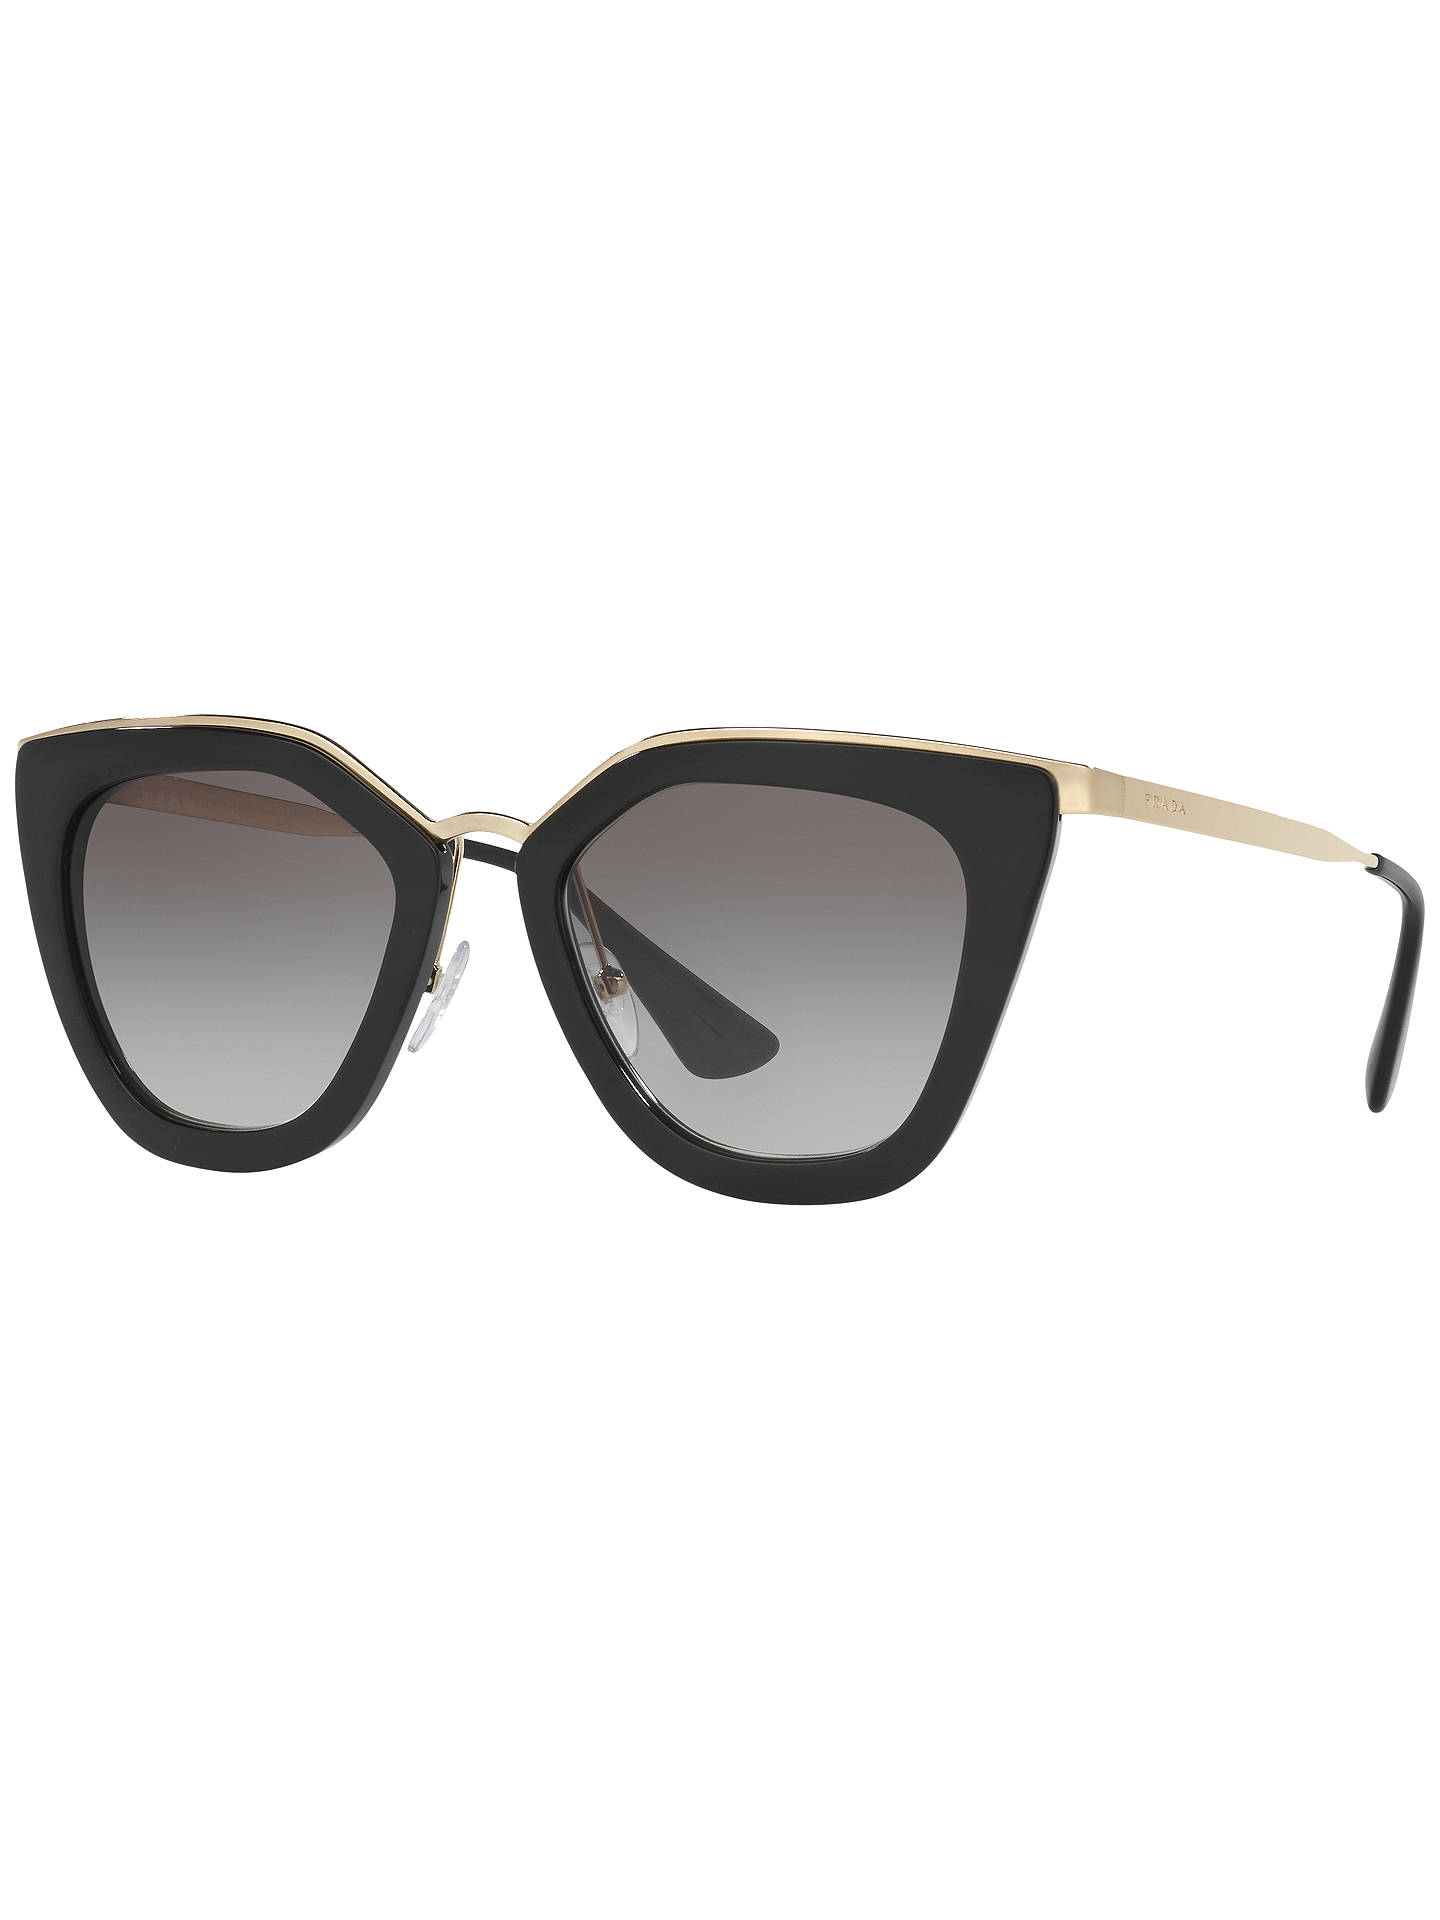 Prada Pr 53 Ss Gradient Cat's Eye Sunglasses, Black by Prada